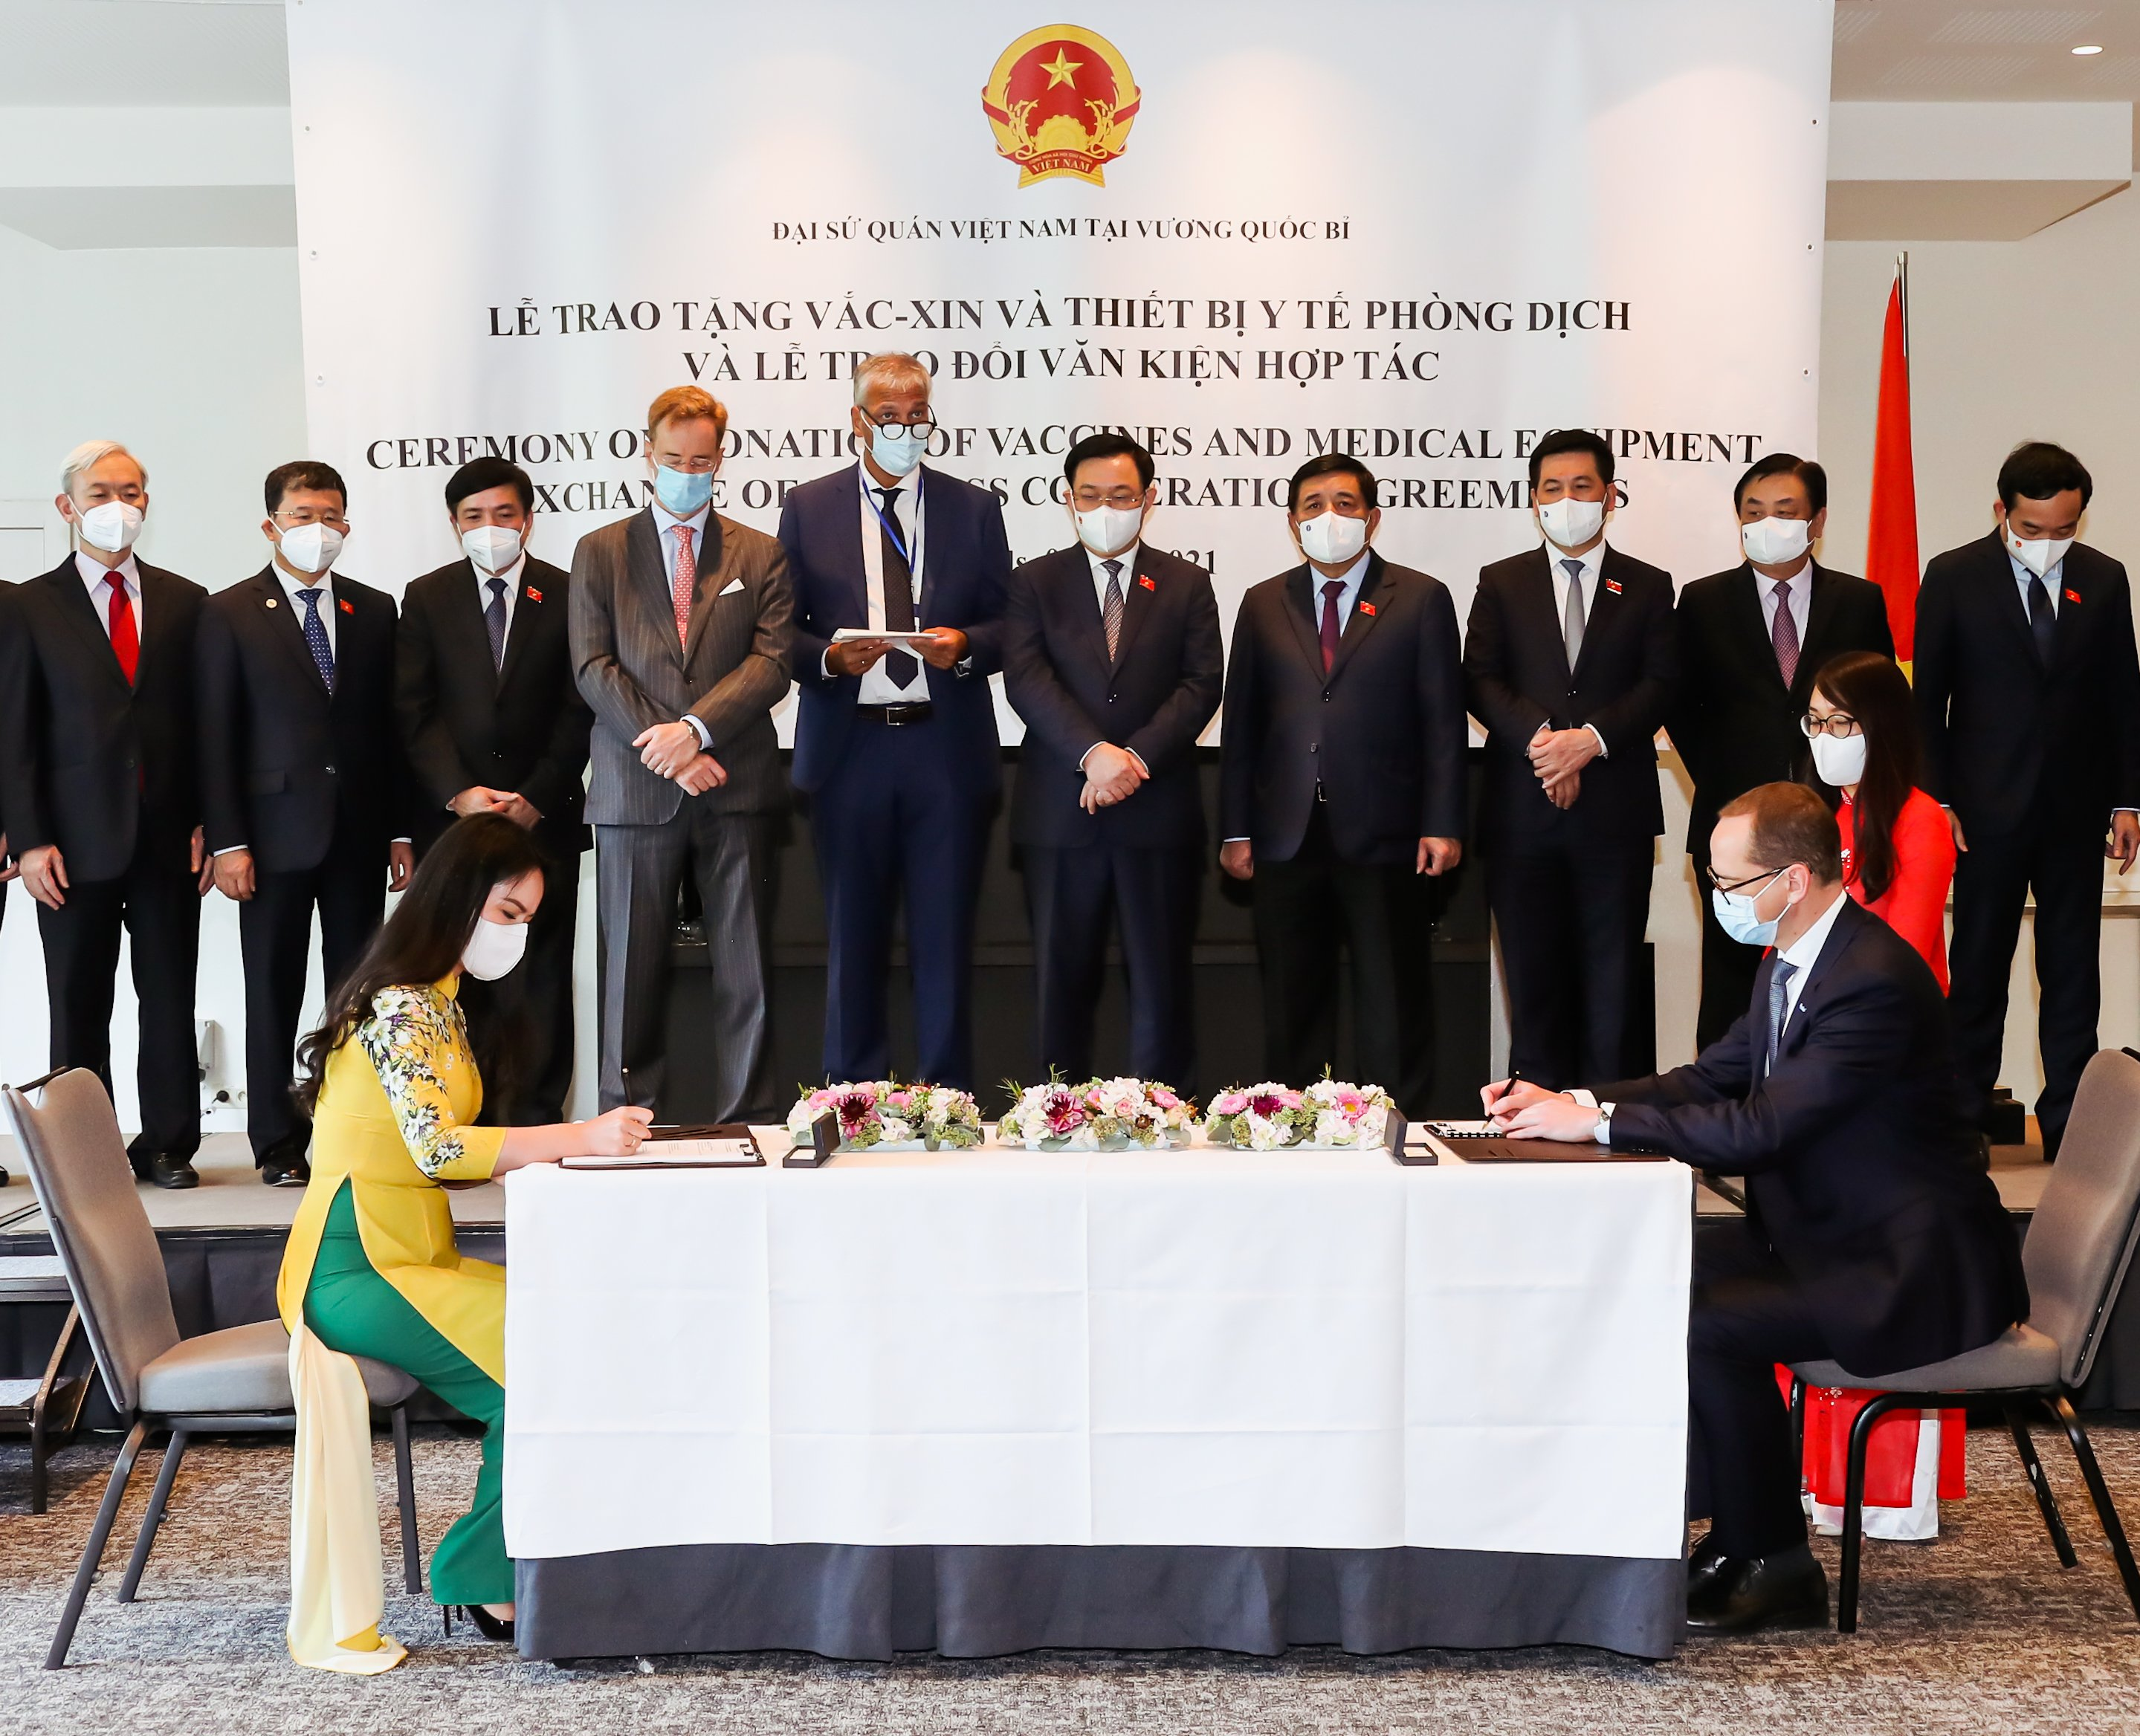 TT Group and Ørsted to invest 30 billion USD in offshore wind power development in Vietnam